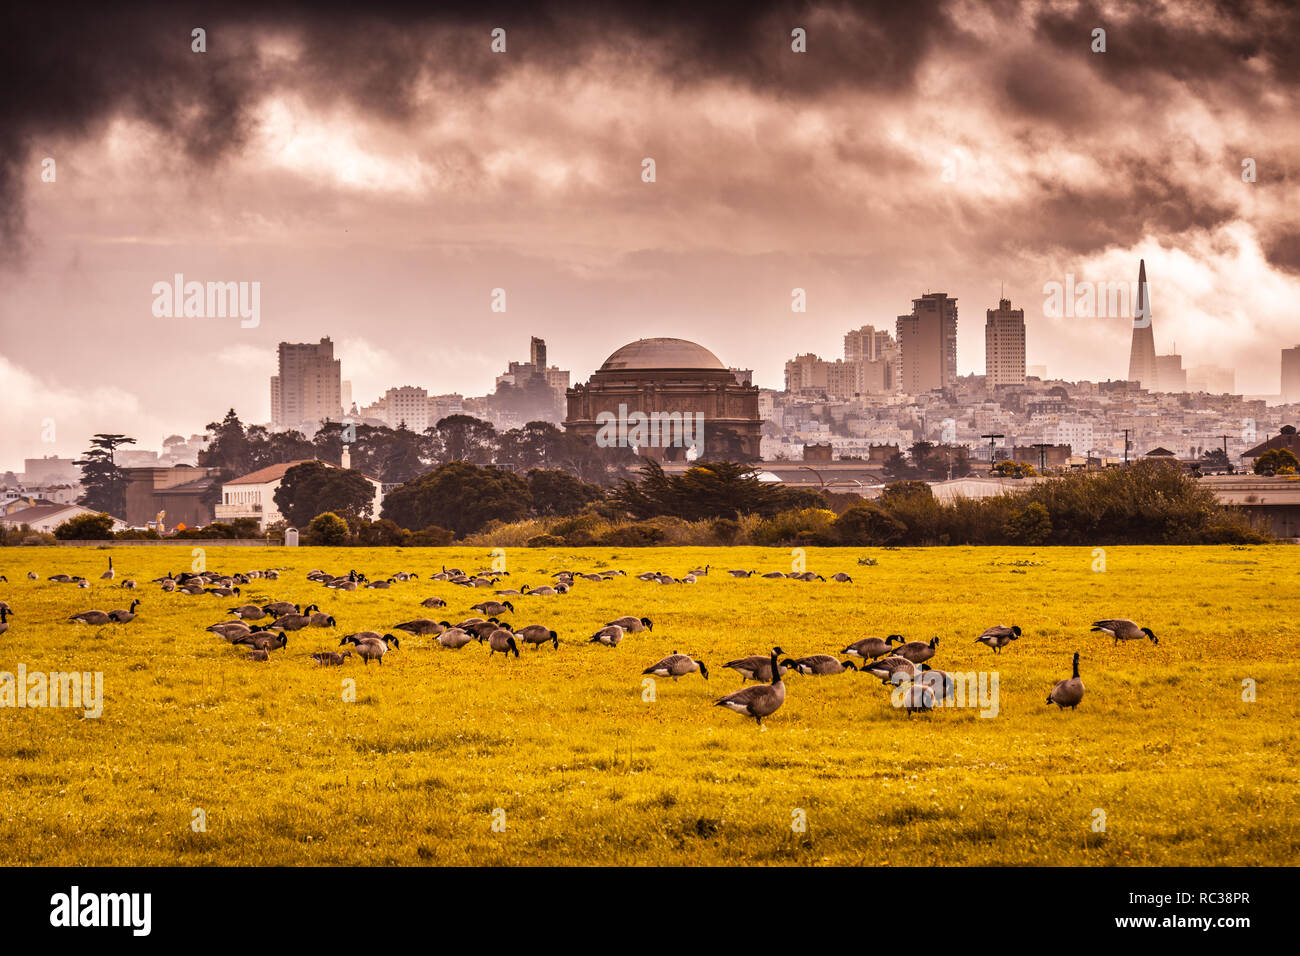 Heavy skies about San Francisco - Stock Image